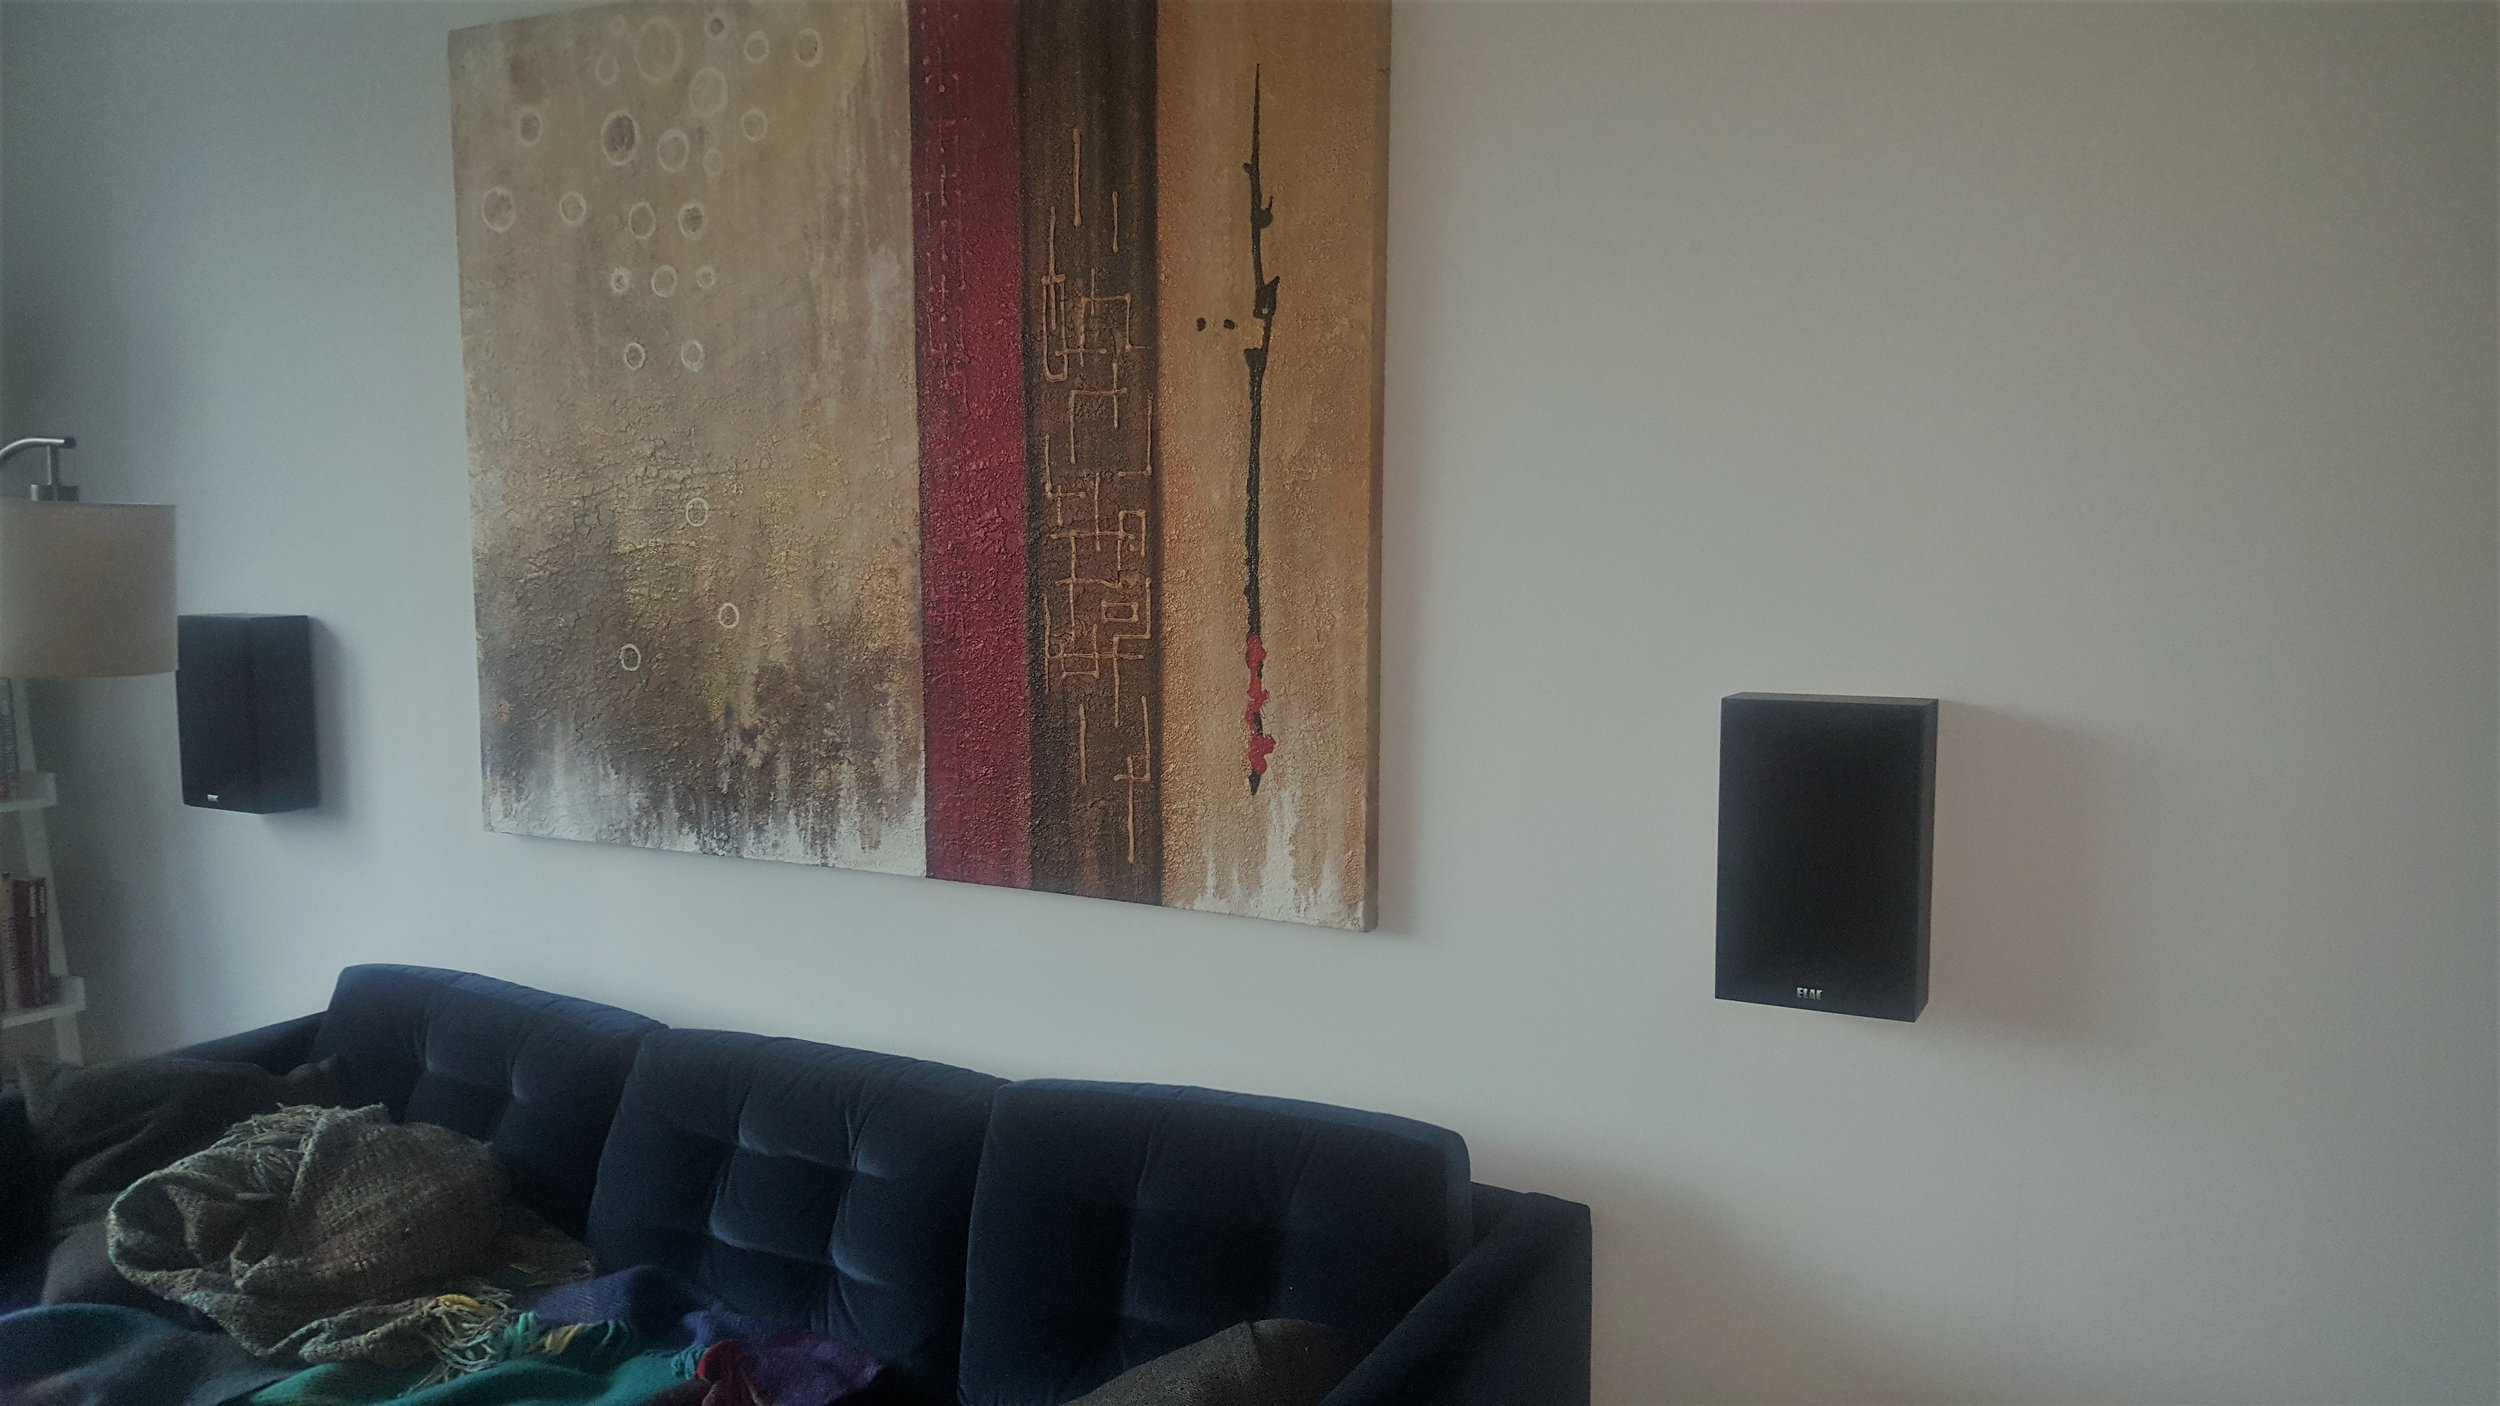 The Avalon Chrystie, Manhattan  Had to hang this painting 32 inches from the ground & then install these two Elac speakers 17 inches on each side. laser level precision because we do use a laser level.